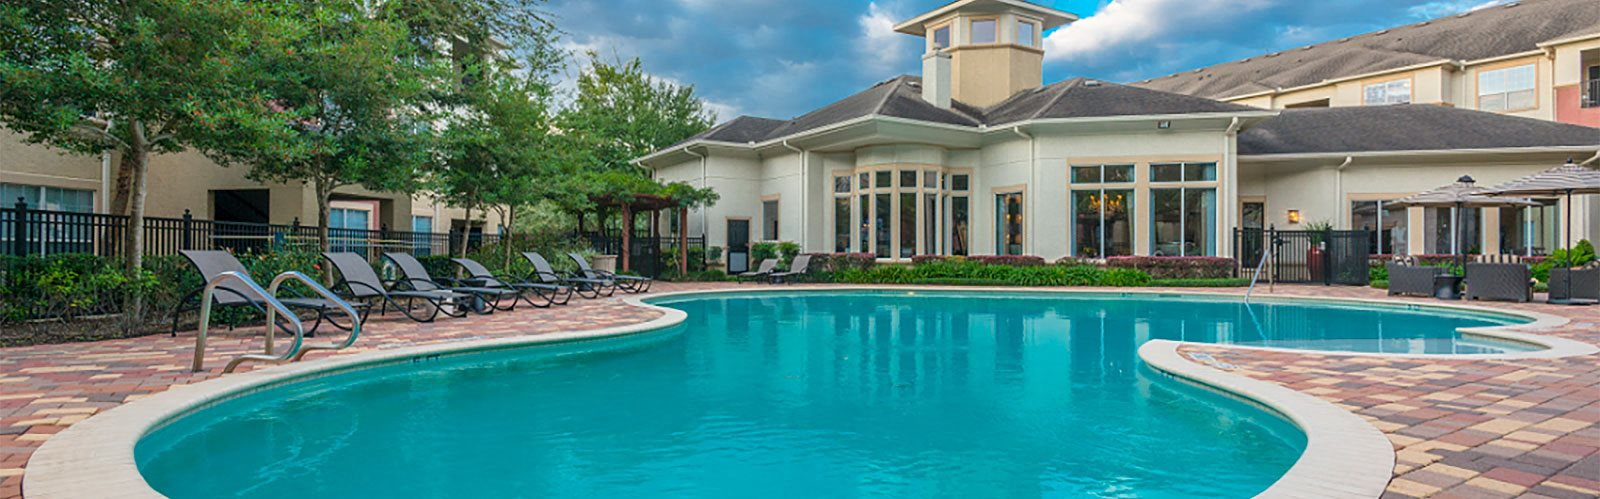 Pool Side Relaxing Area at Marquette at Piney Point, Houston, TX, 77063